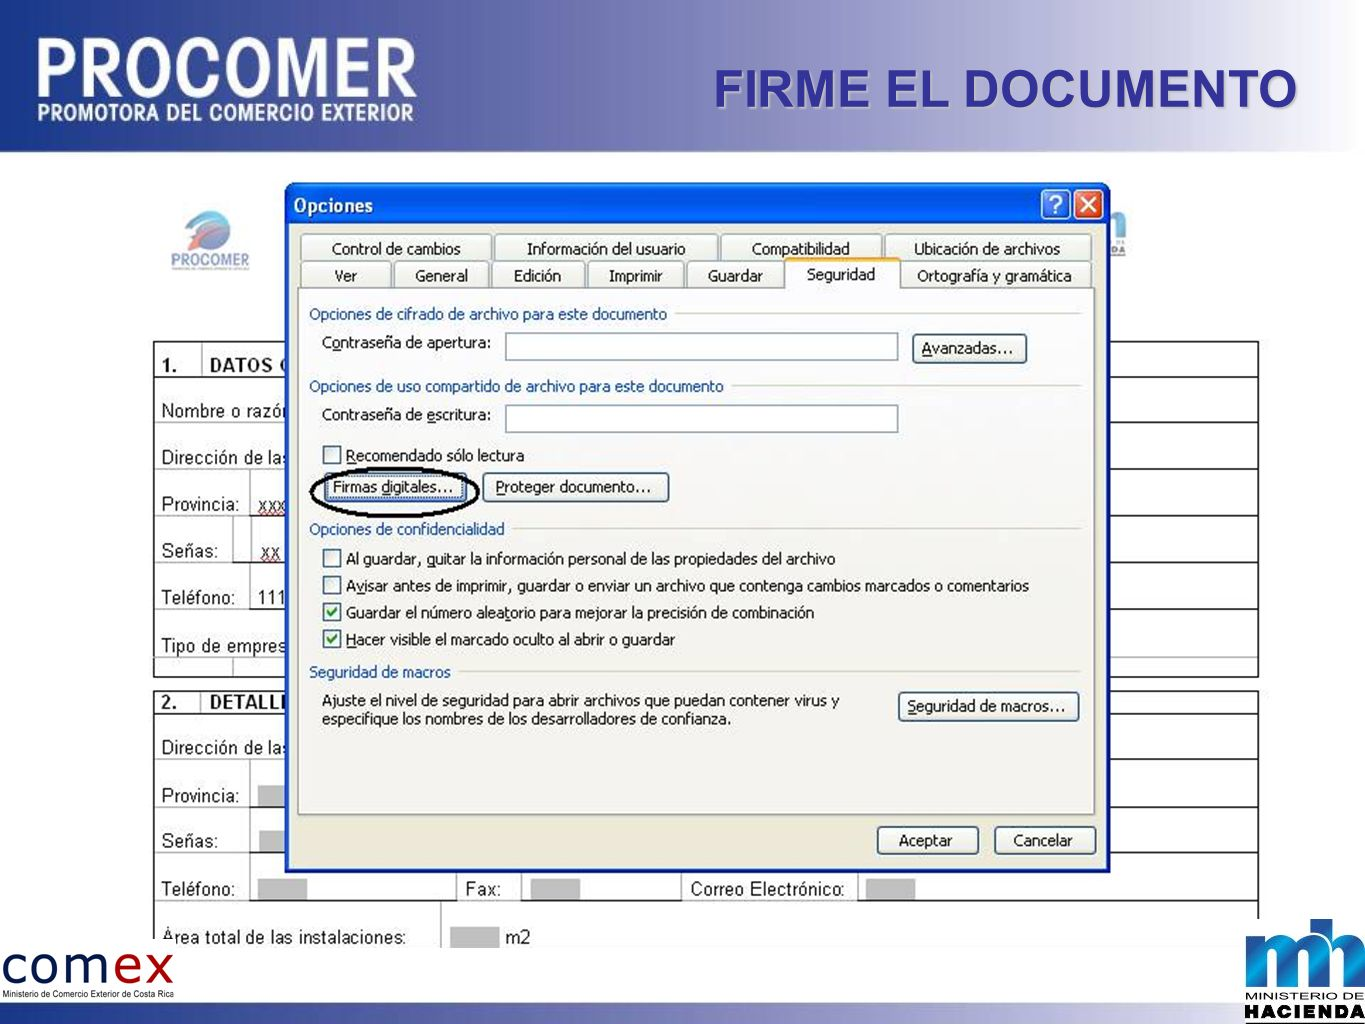 FIRME EL DOCUMENTO